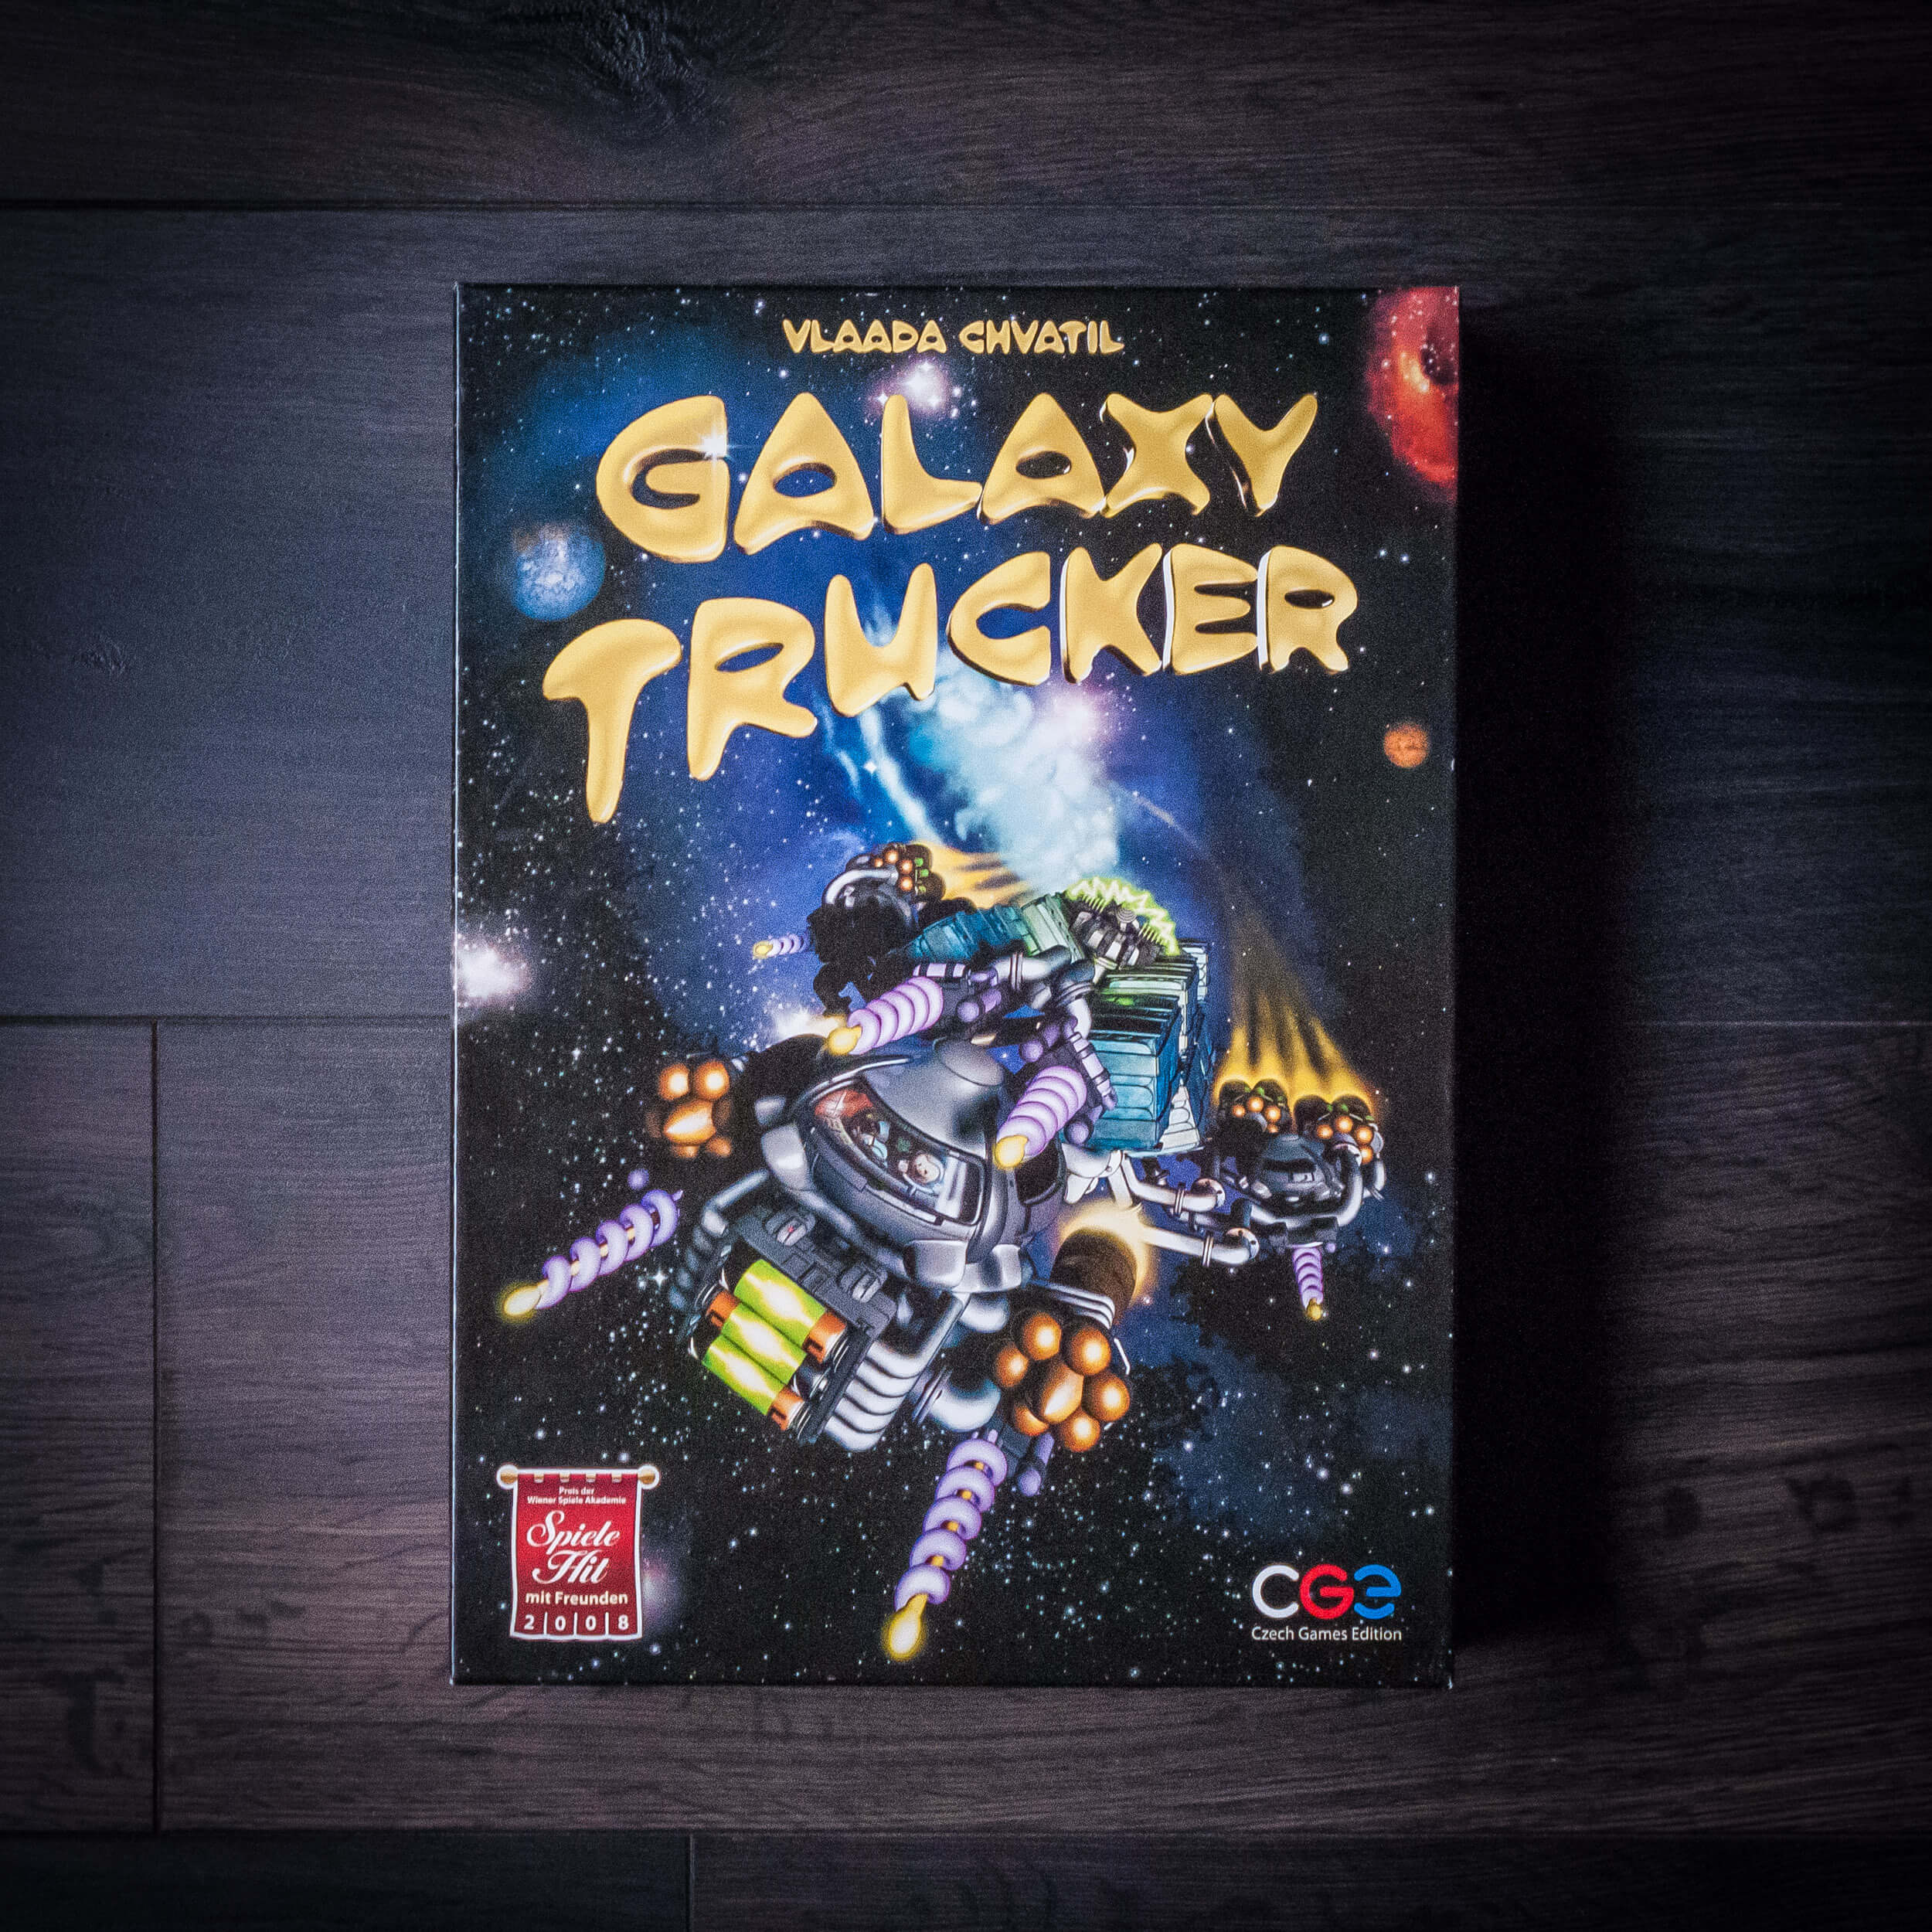 Galaxy Trucker. In this game, players quickly build spaceships out of scavenged parts, afterwards running them through a gauntlet of adventures. This results in much hilarity and agony as the players'spaceships struggle to survive in one piece.